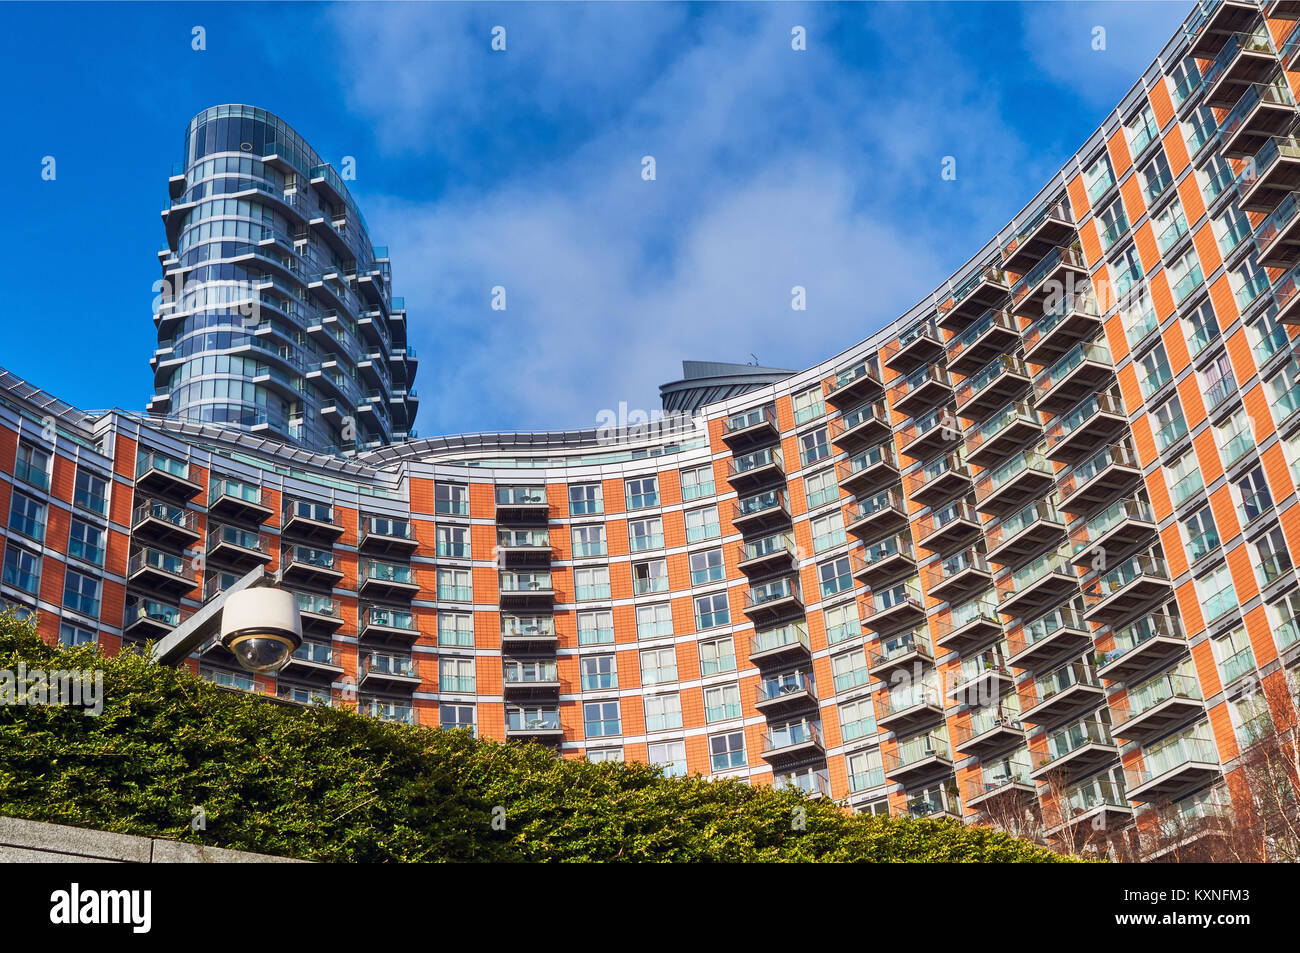 New apartents on the River Thames near Canary Wharf, East London, UK - Stock Image